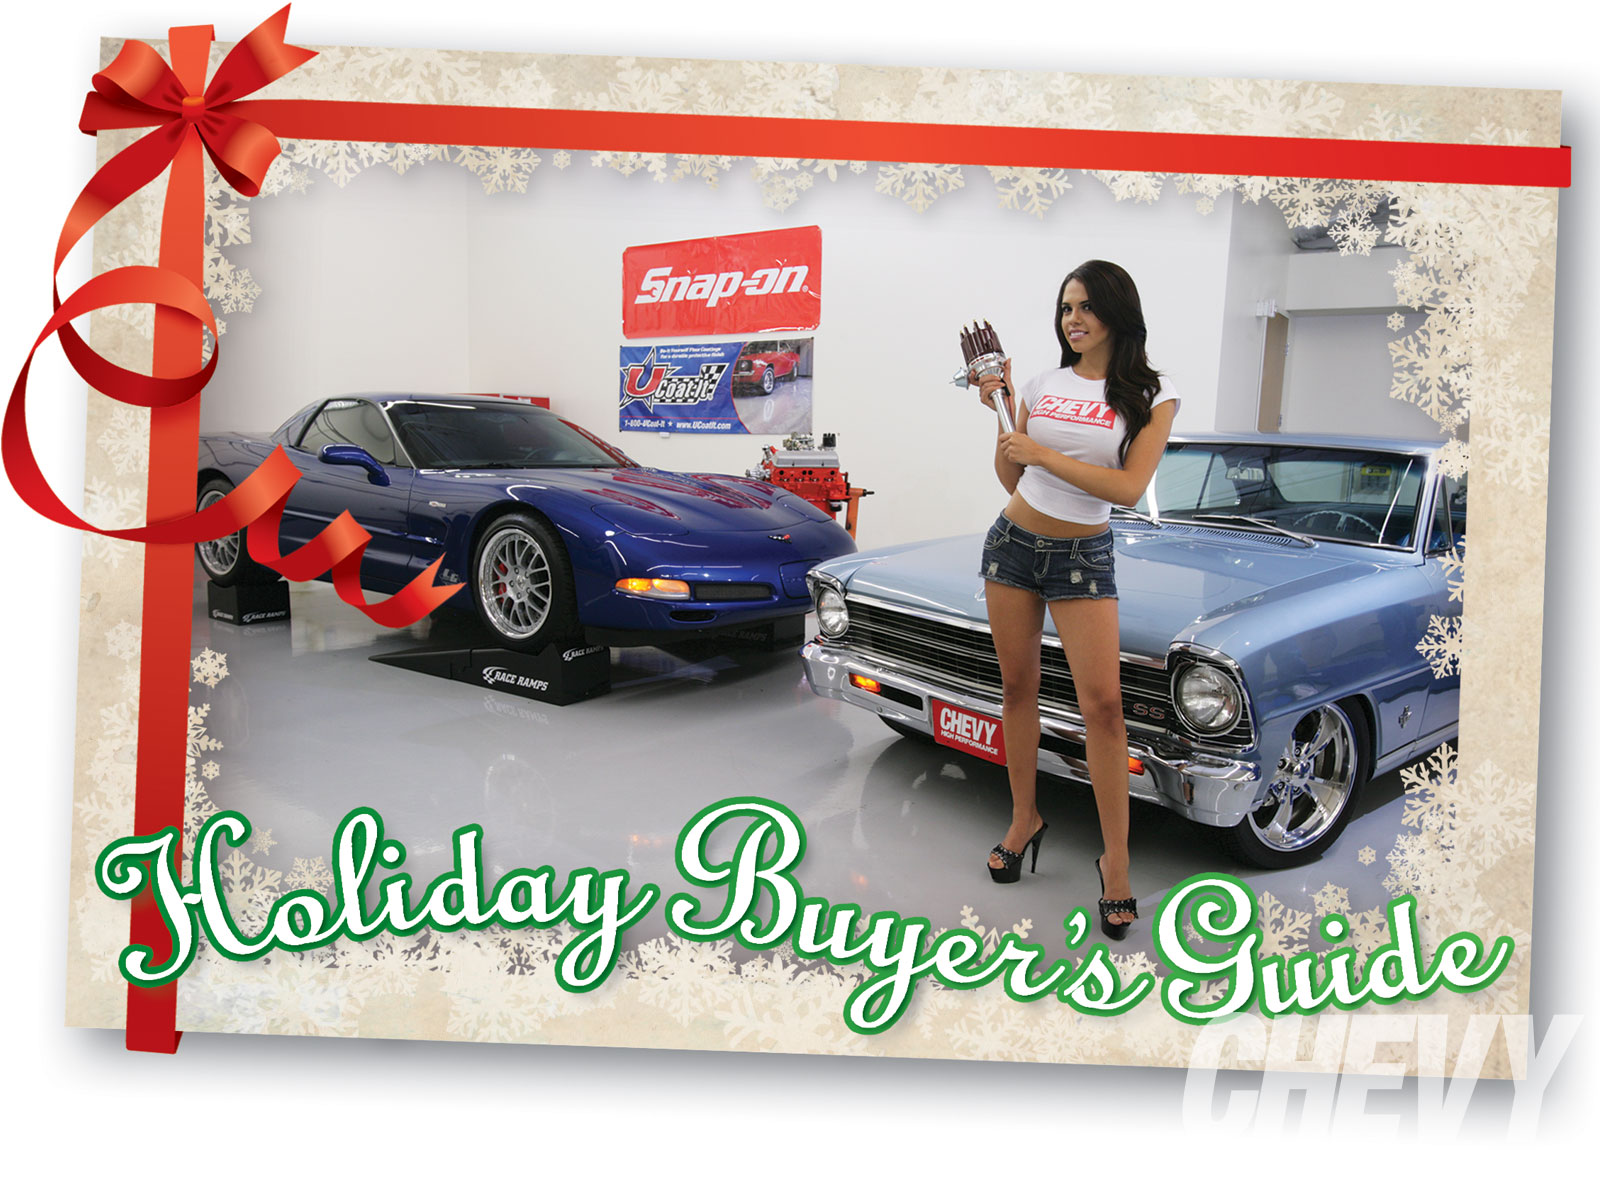 1012chp 01 O 2010 Chevy High Performance Holiday Buyers Guide Model